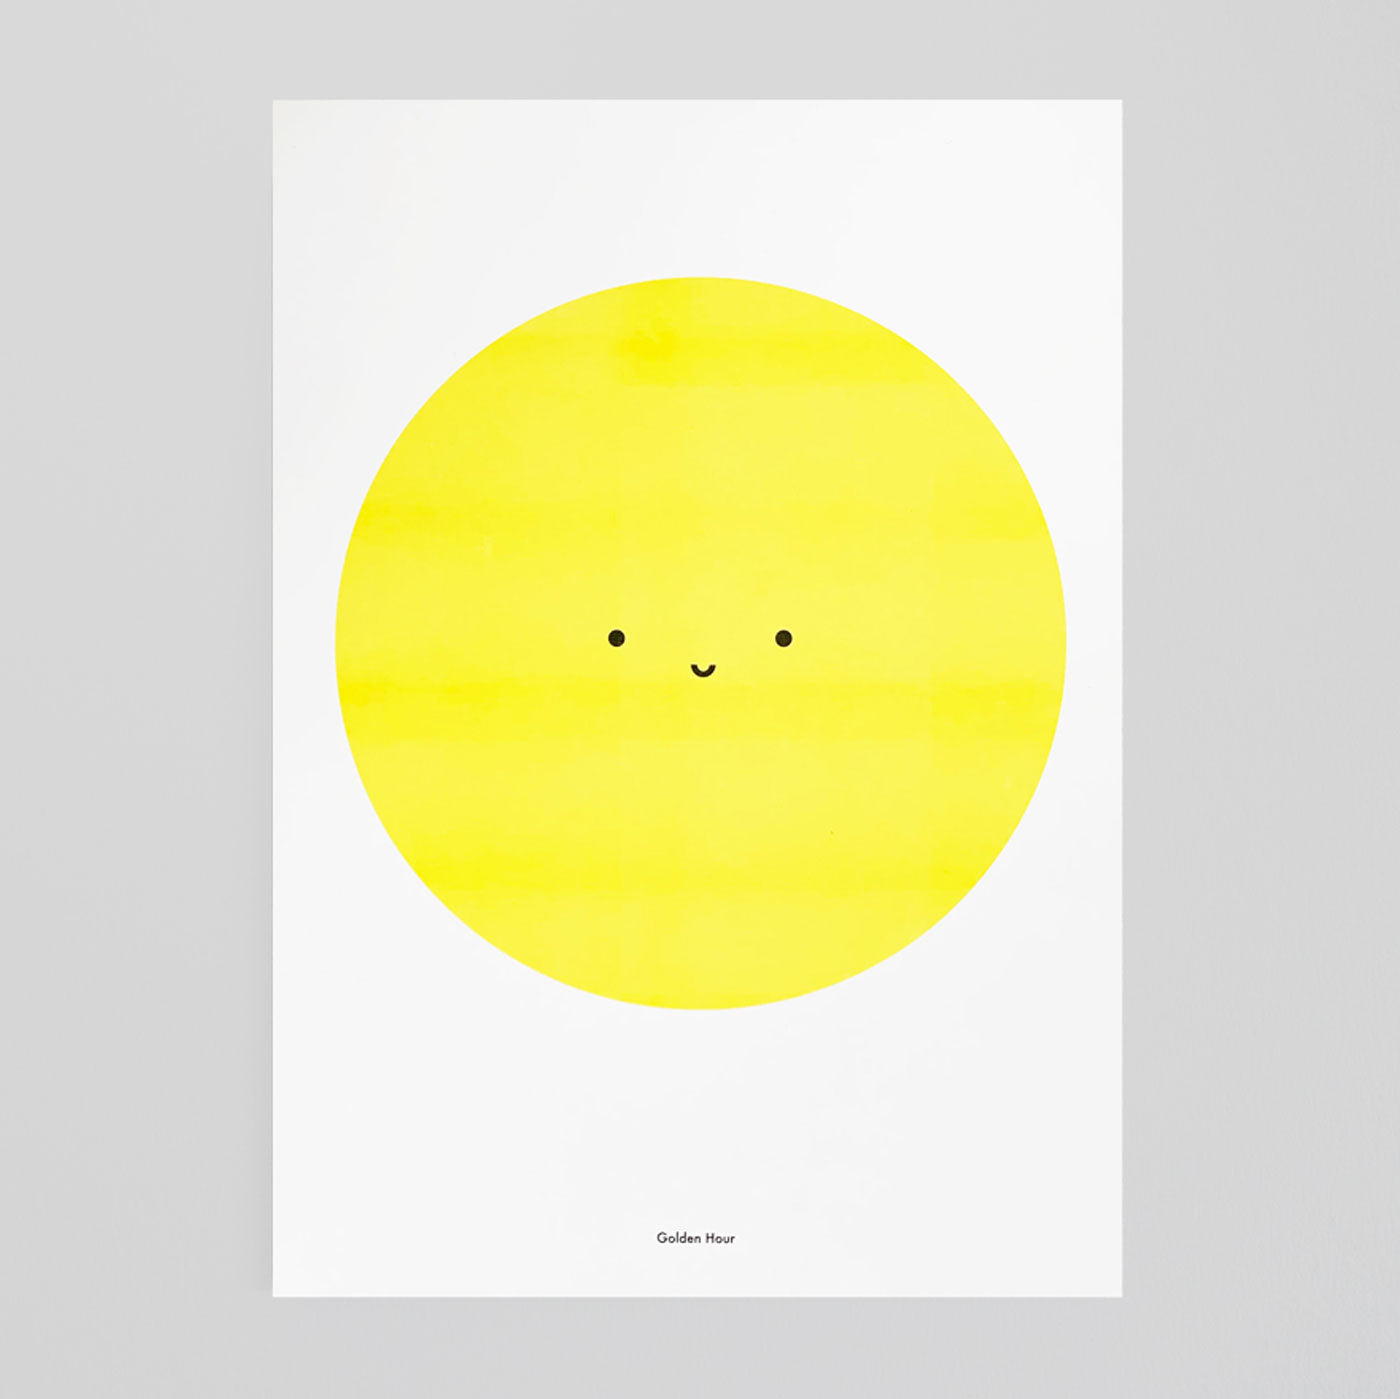 Golden Hour Print by Scout Editions - Colours May Vary